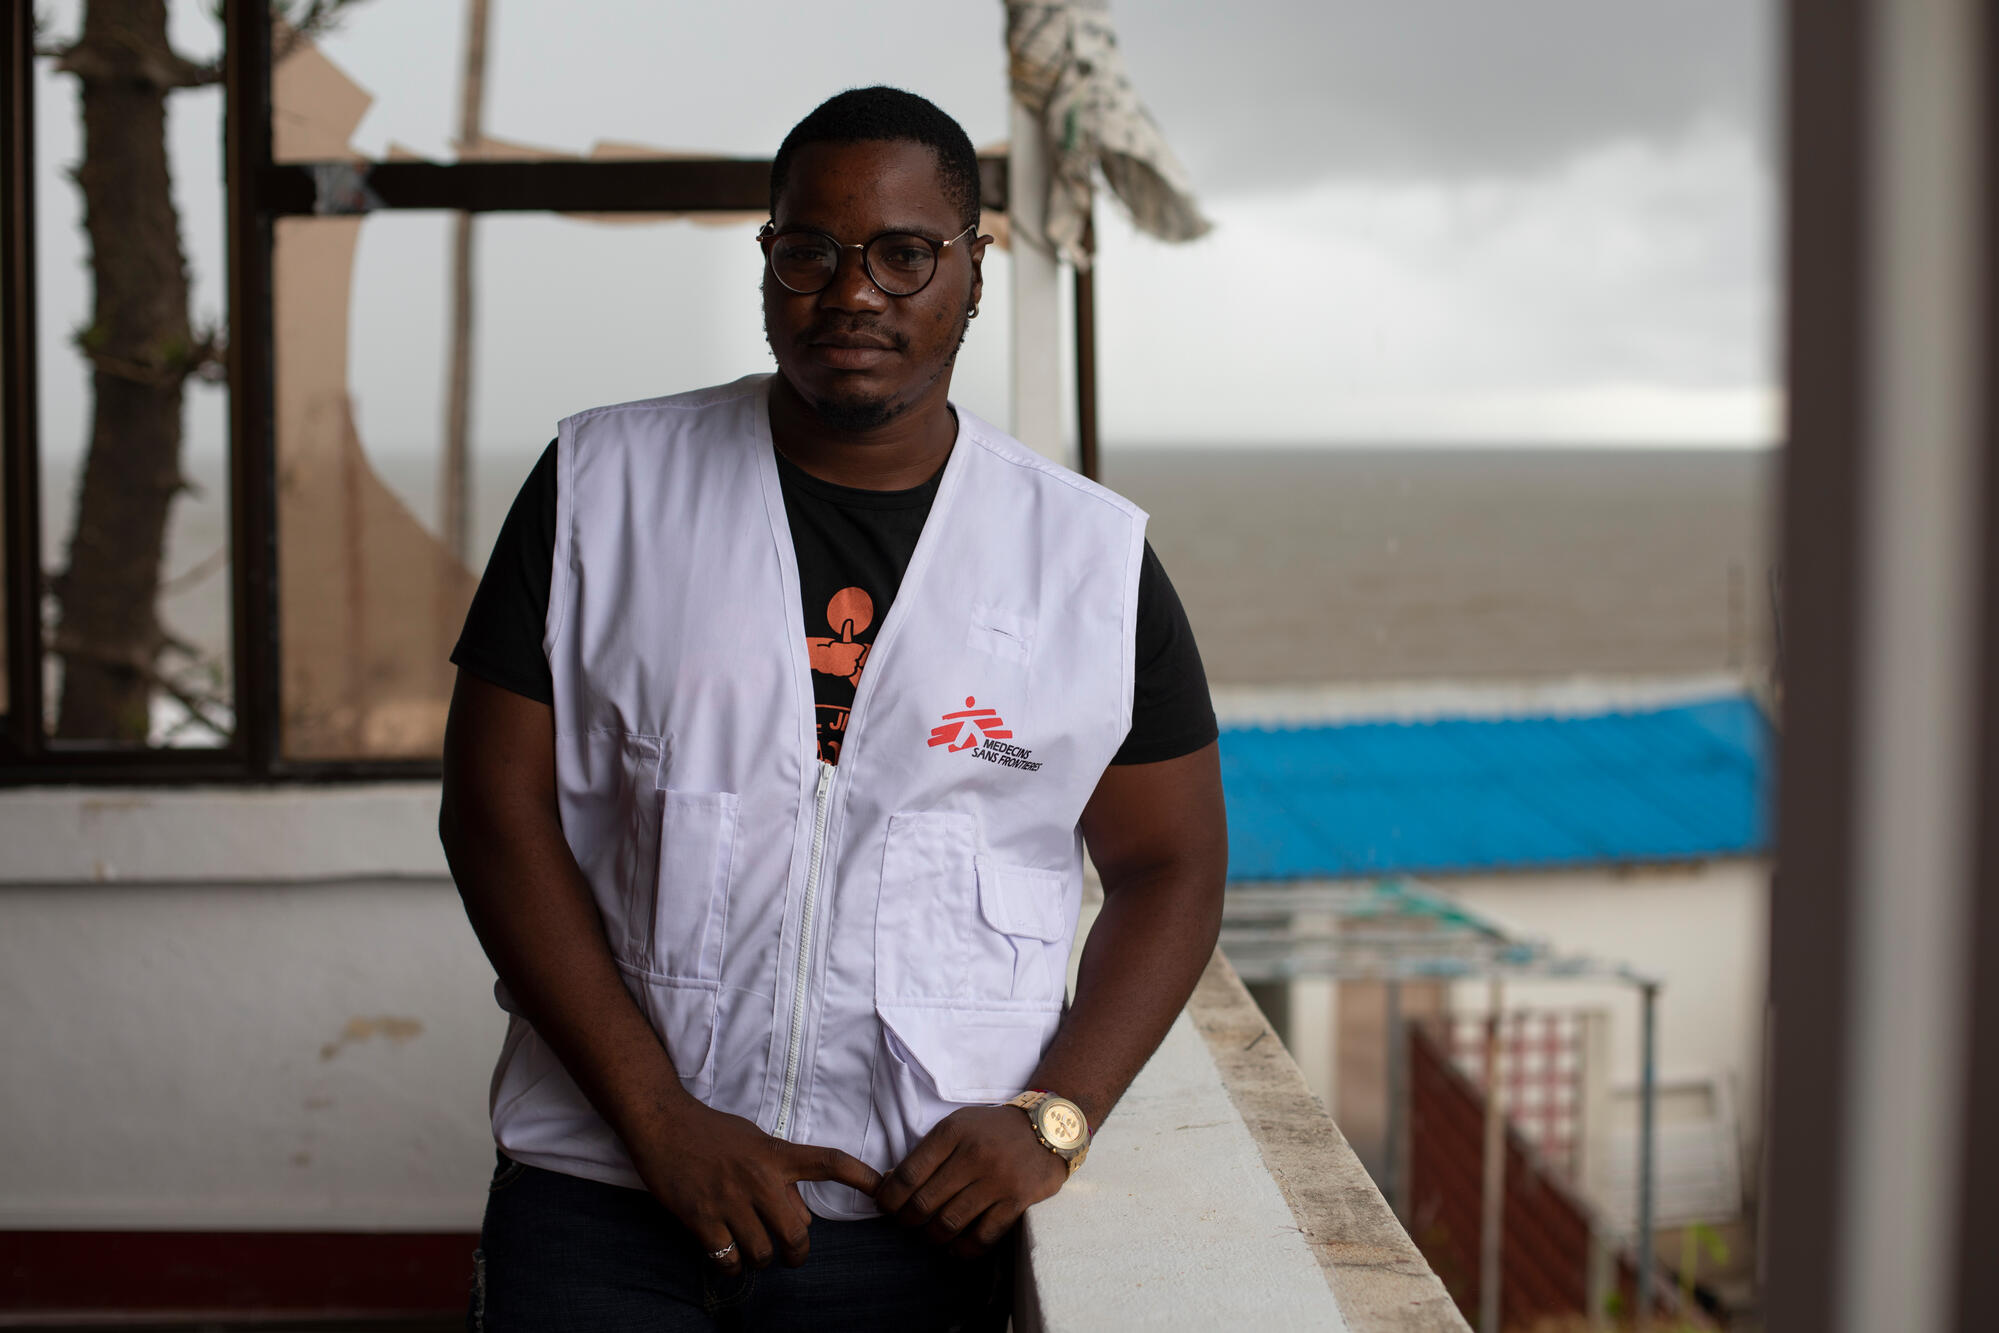 Filipe Francisco Luis, sex worker and key member of MSF's HIV outreach program to men who have sex with men in Beira.